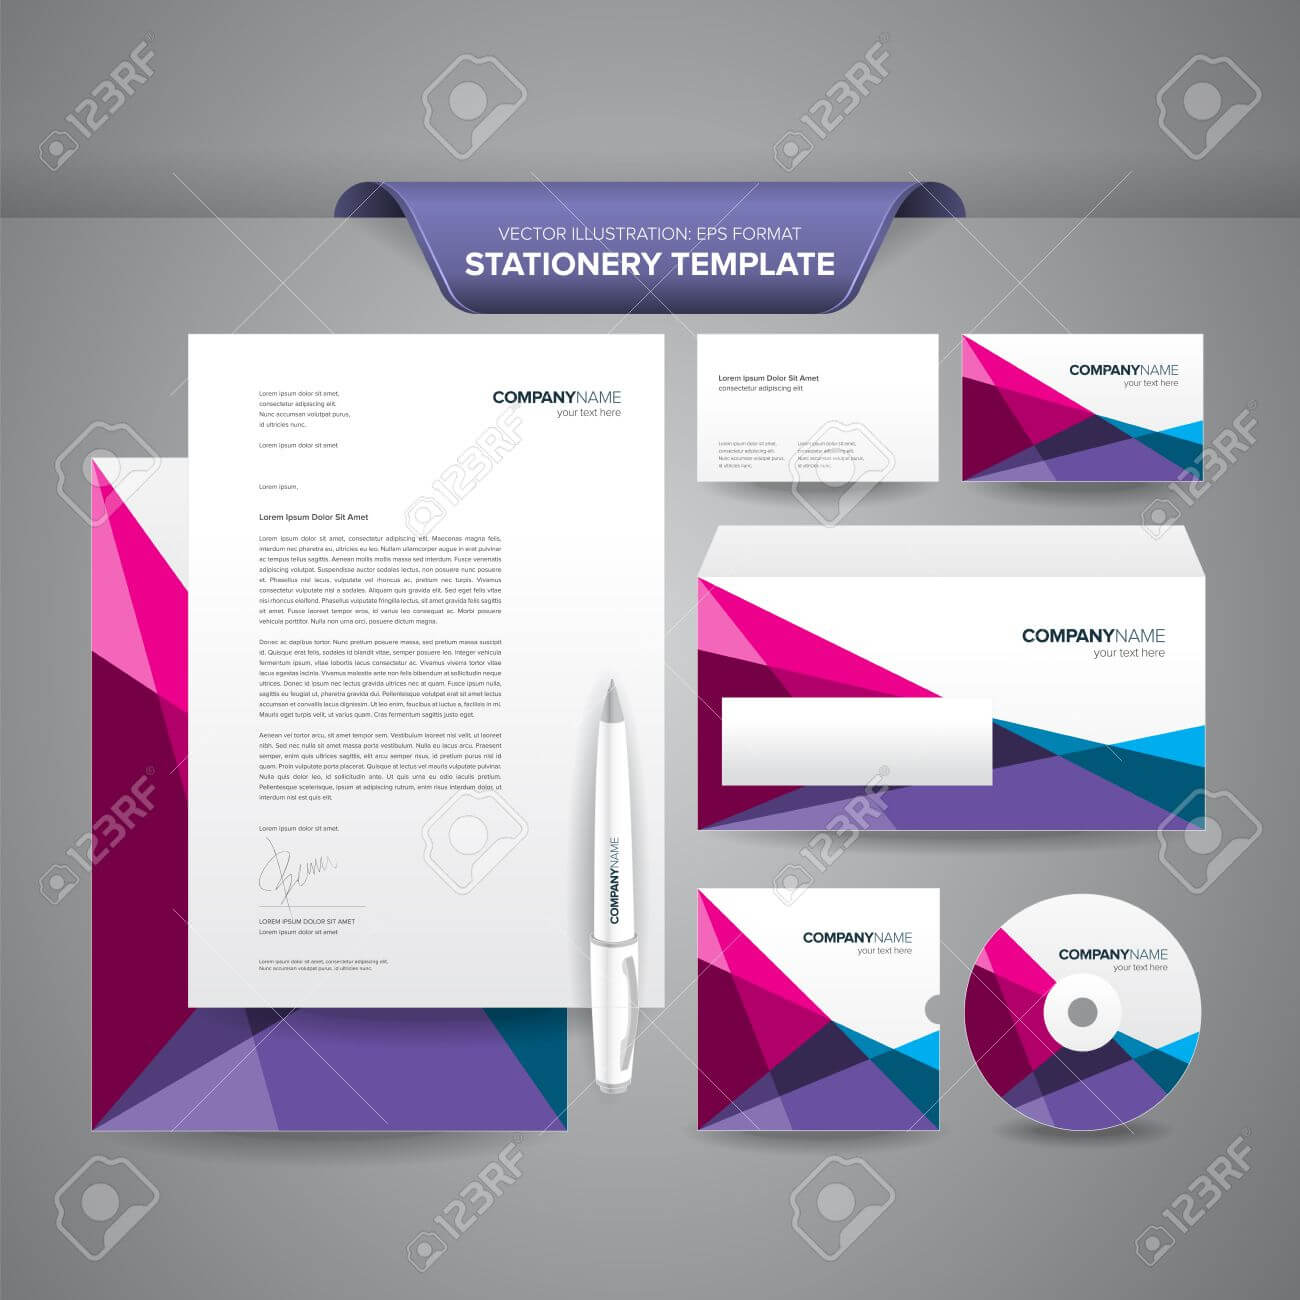 Complete Set Of Business Stationery Templates Such As Letterhead,.. Throughout Business Card Letterhead Envelope Template